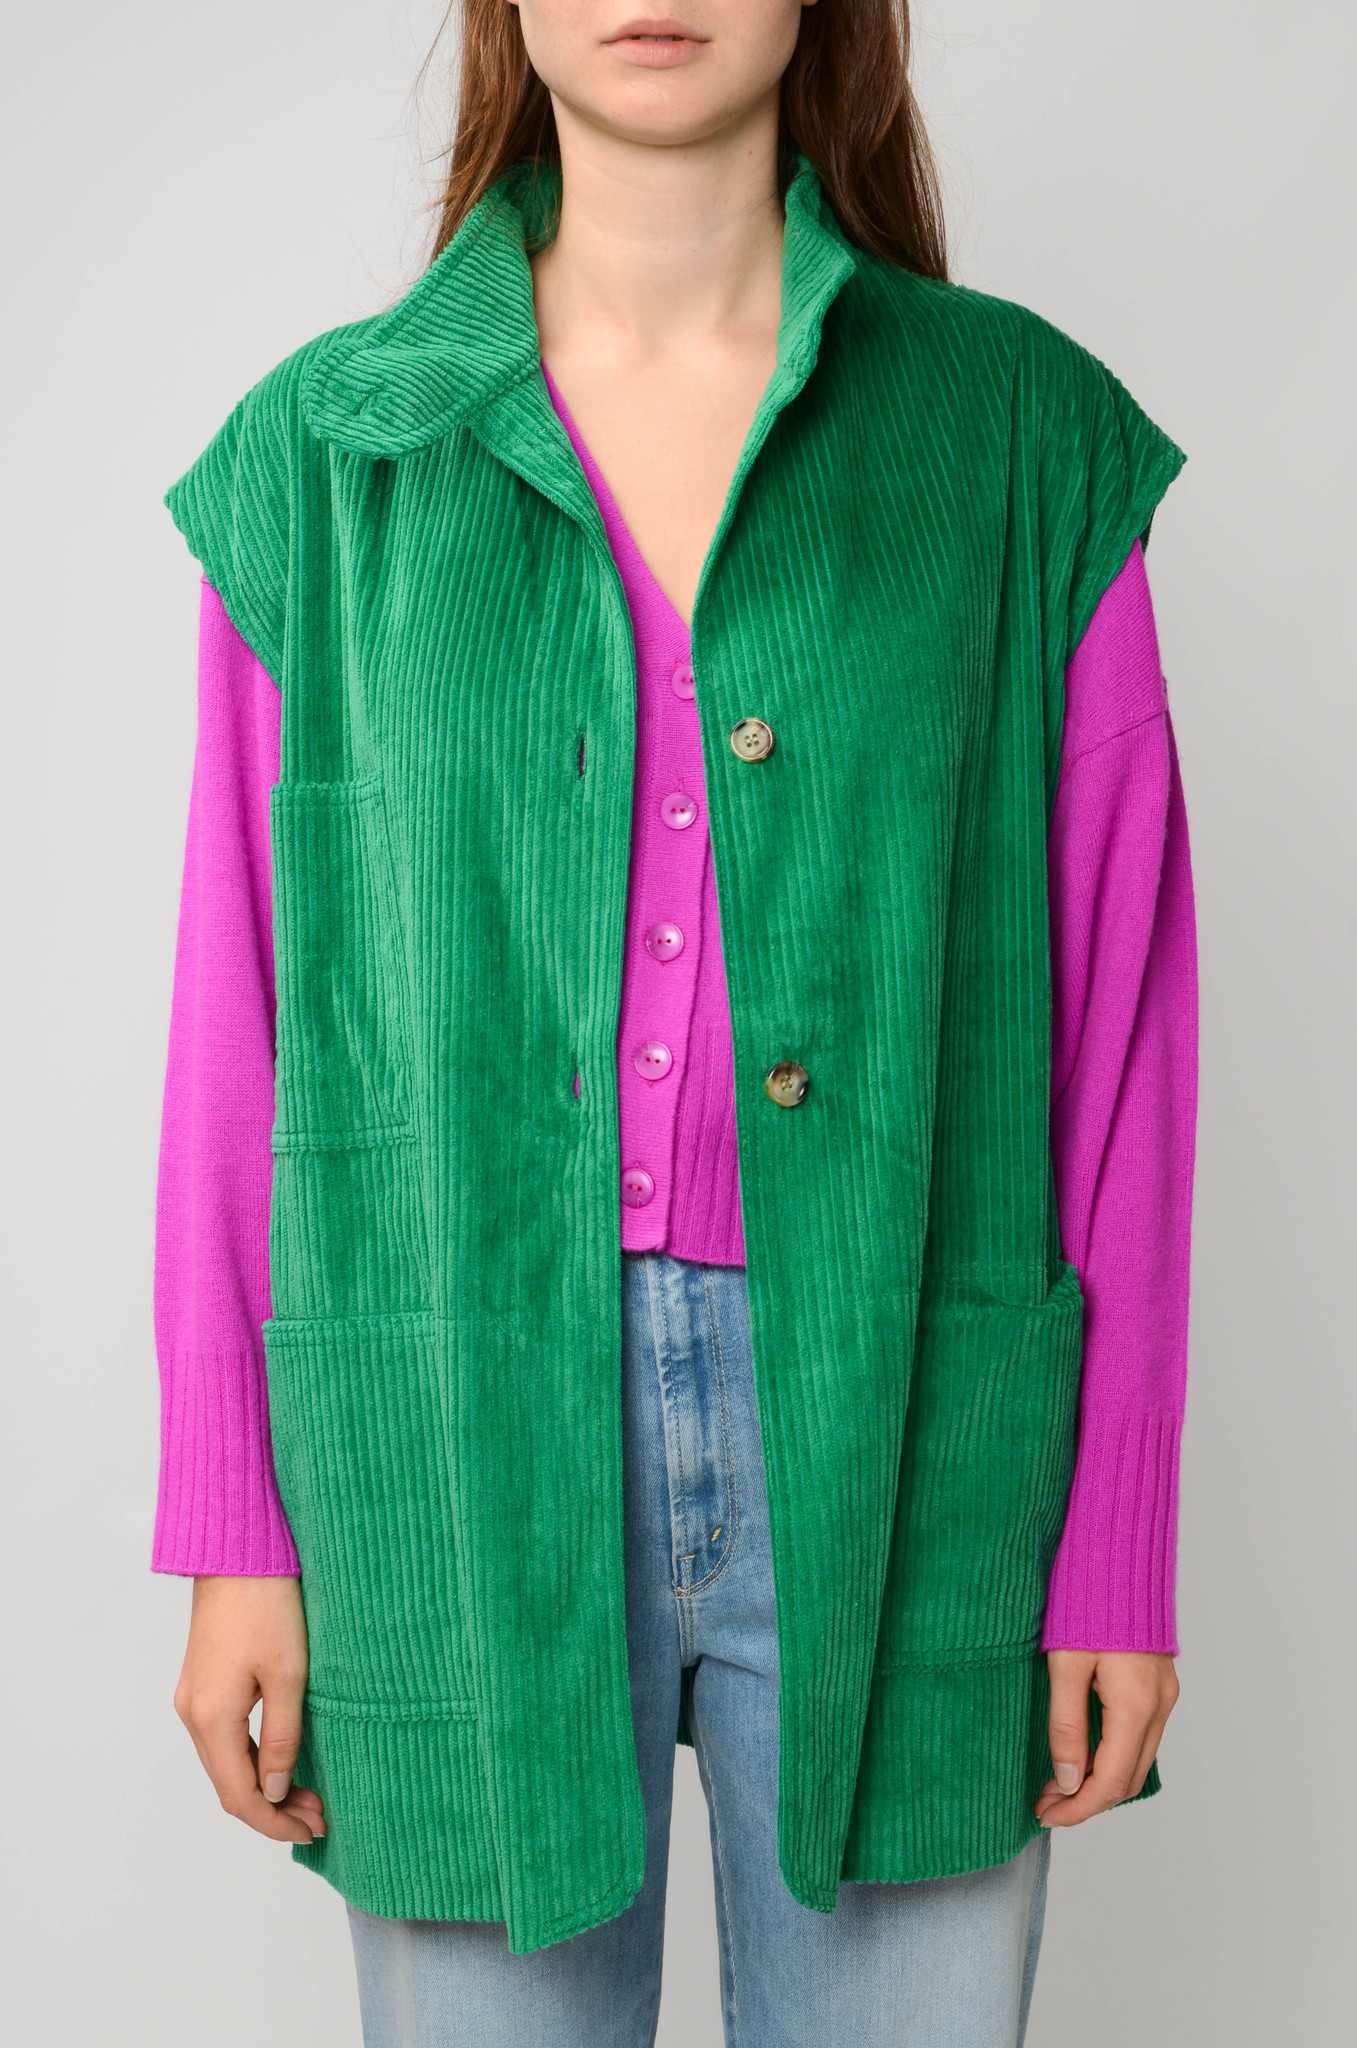 JAGGER JACK IN EMERALD GREEN-1